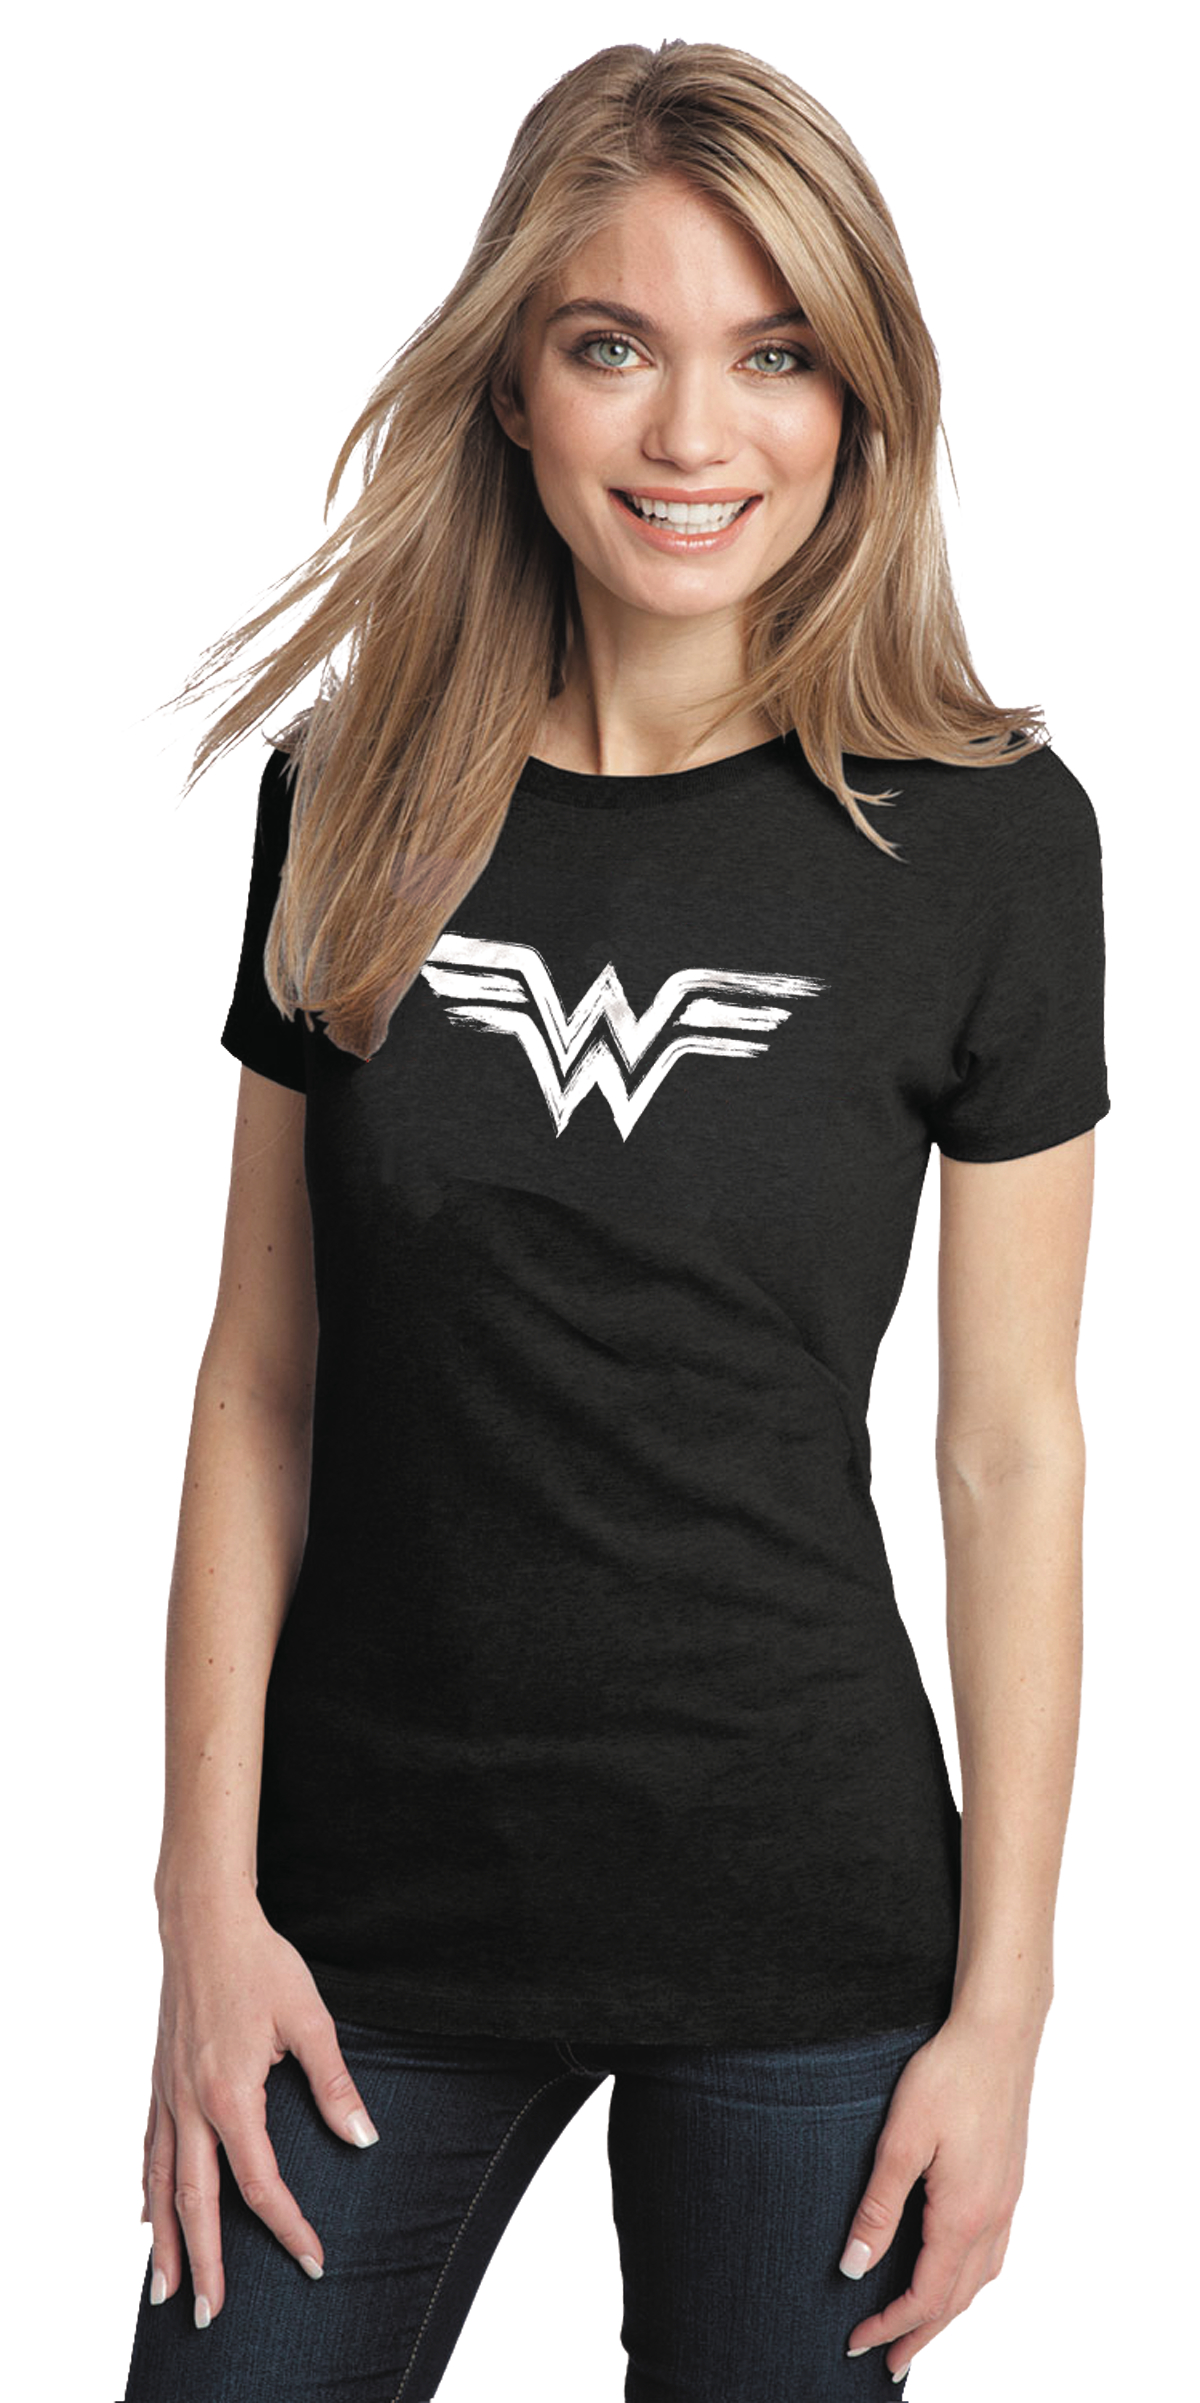 WONDER WOMAN BRUSHED SYMBOL WOMENS T/S XL